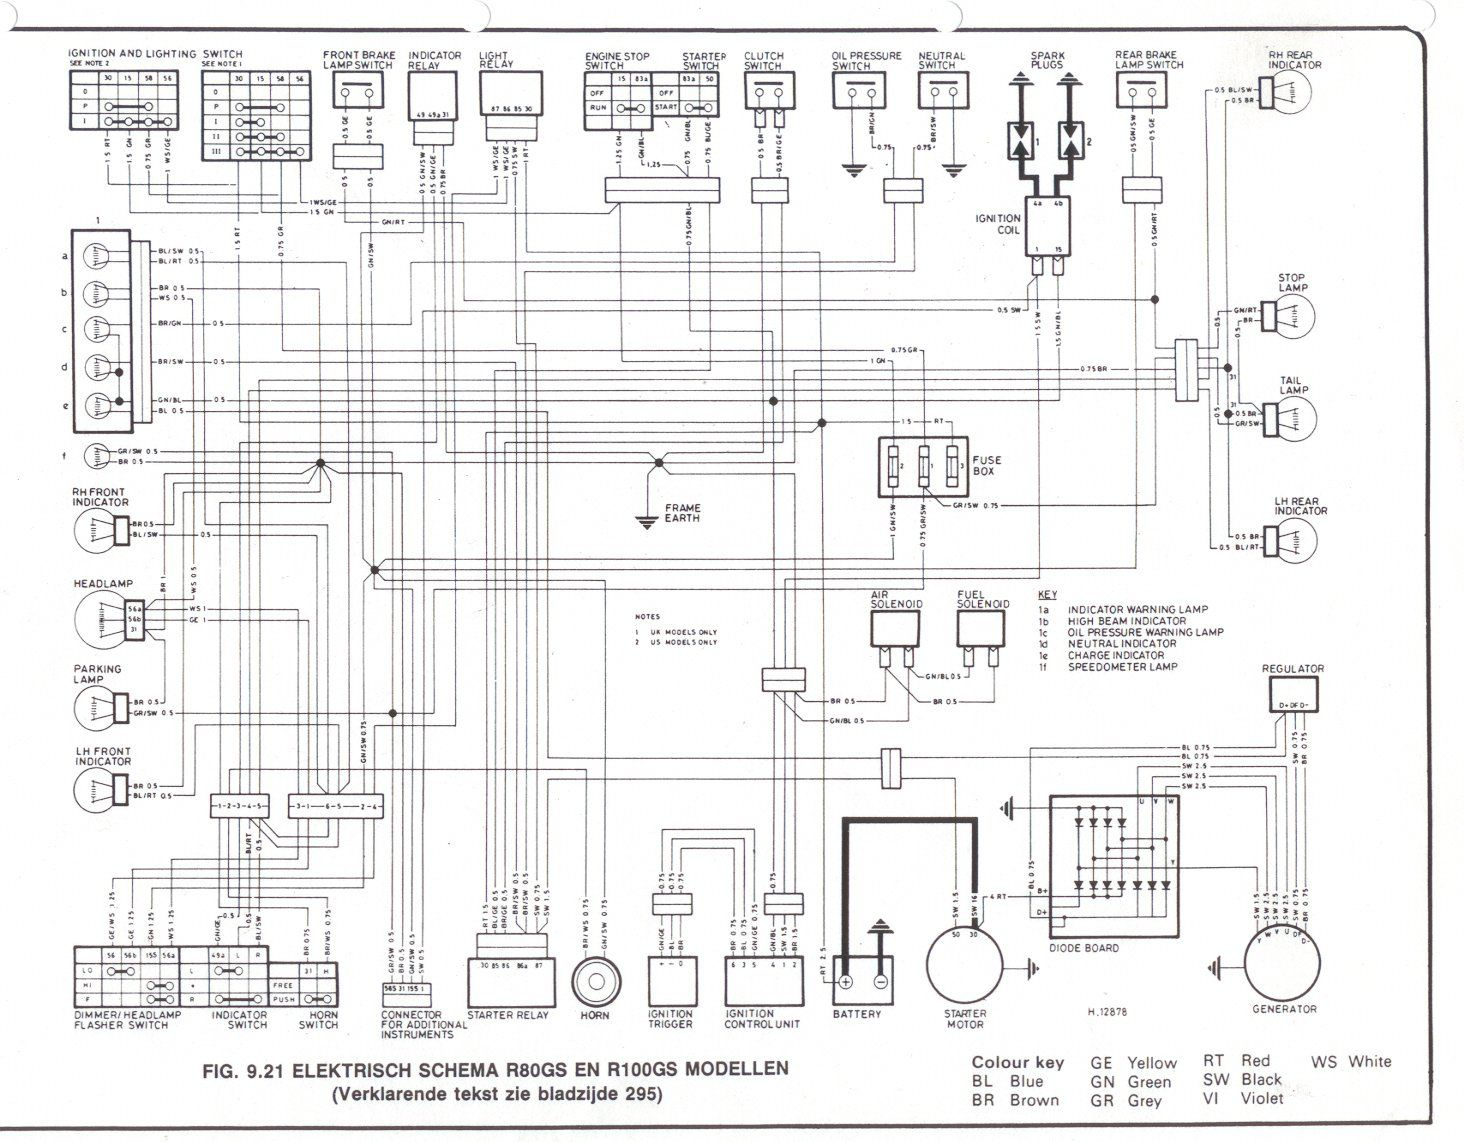 2bafb06a900ec9fa30bfda8cc9ecda05 29864d1315673496 1994 325i english fuse diagram wanted e36 325i  at webbmarketing.co